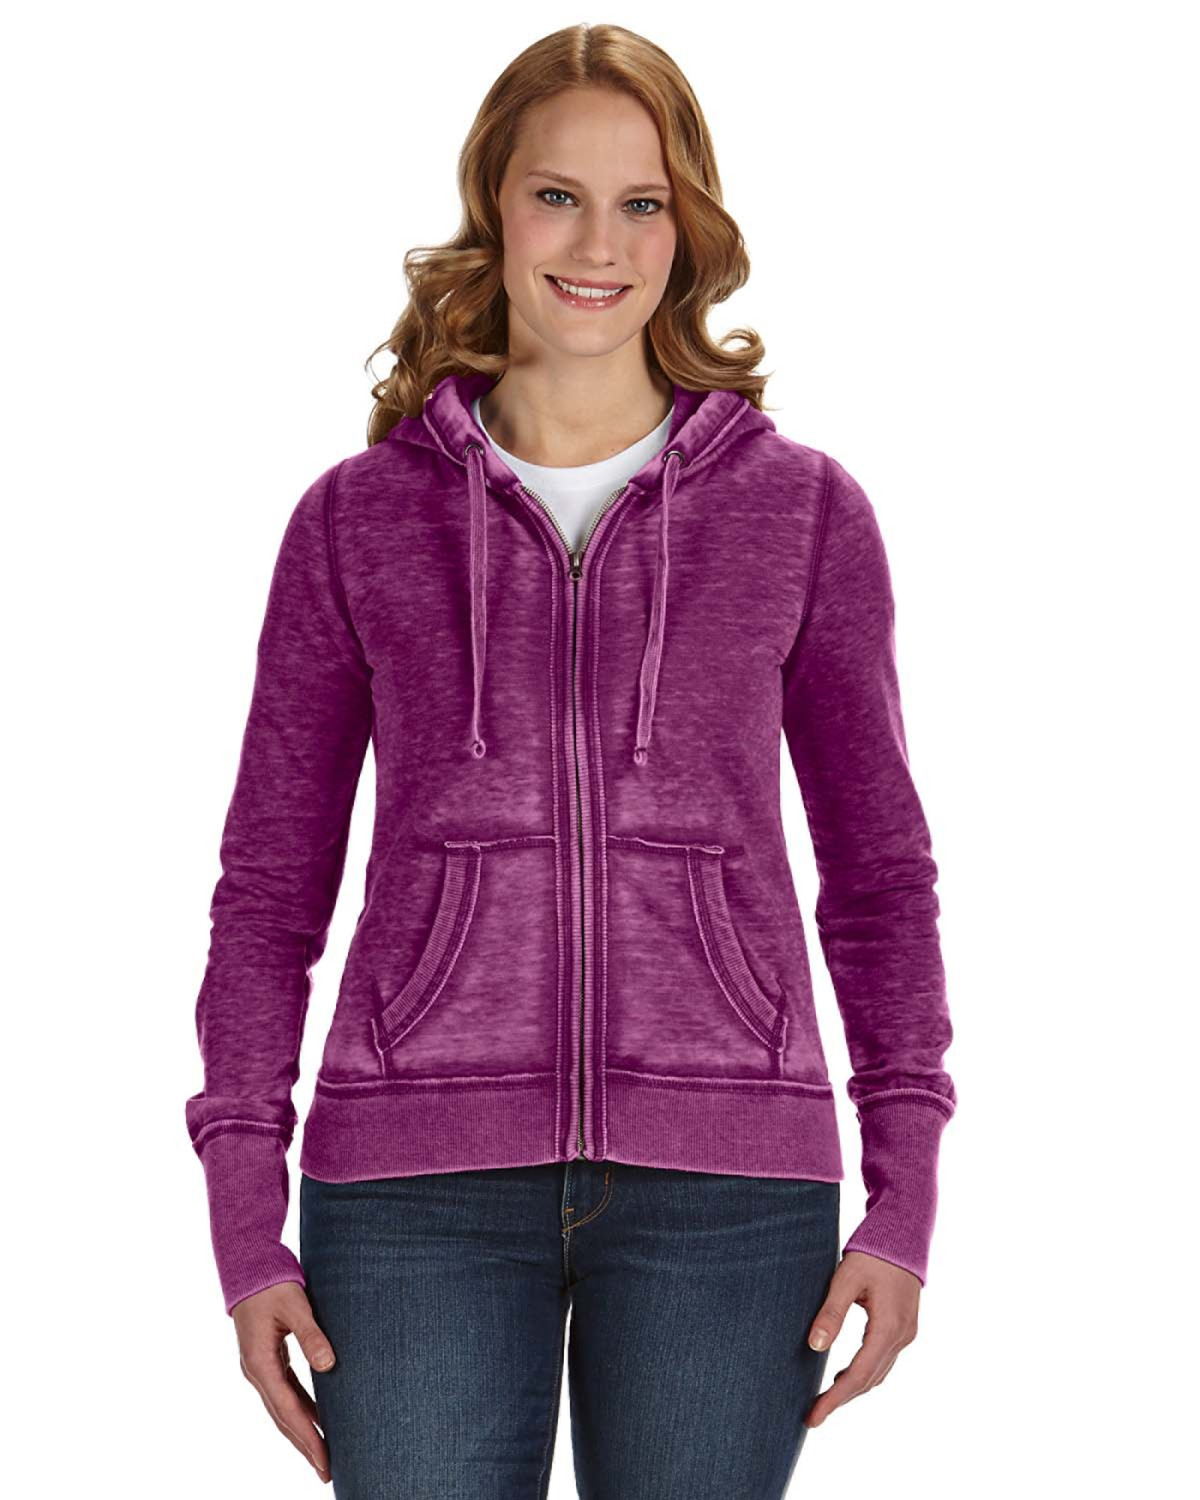 J America JA8913 - Ladies' Zen Full-Zip Fleece Hood